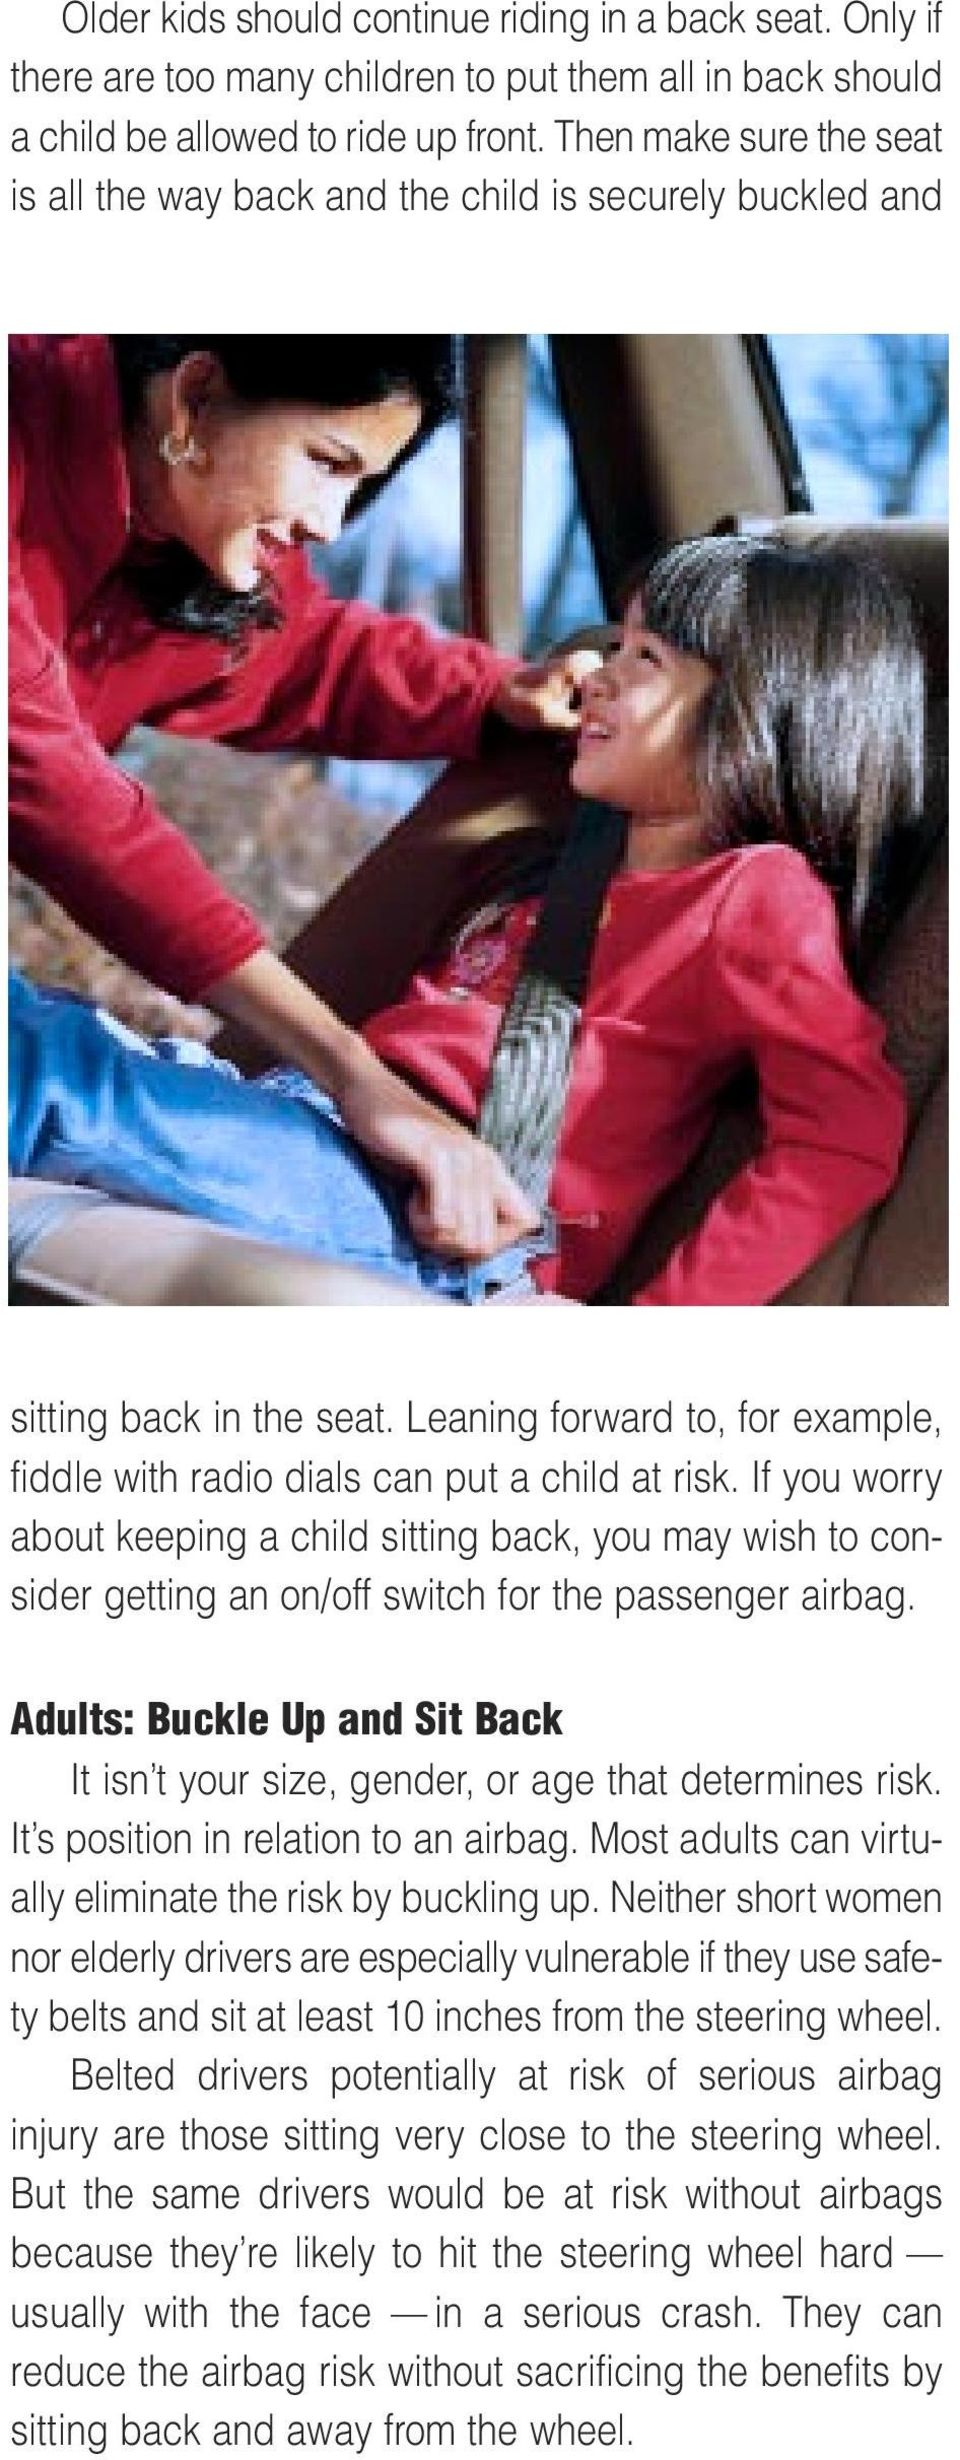 If you worry about keeping a child sitting back, you may wish to consider getting an on/off switch for the passenger airbag.